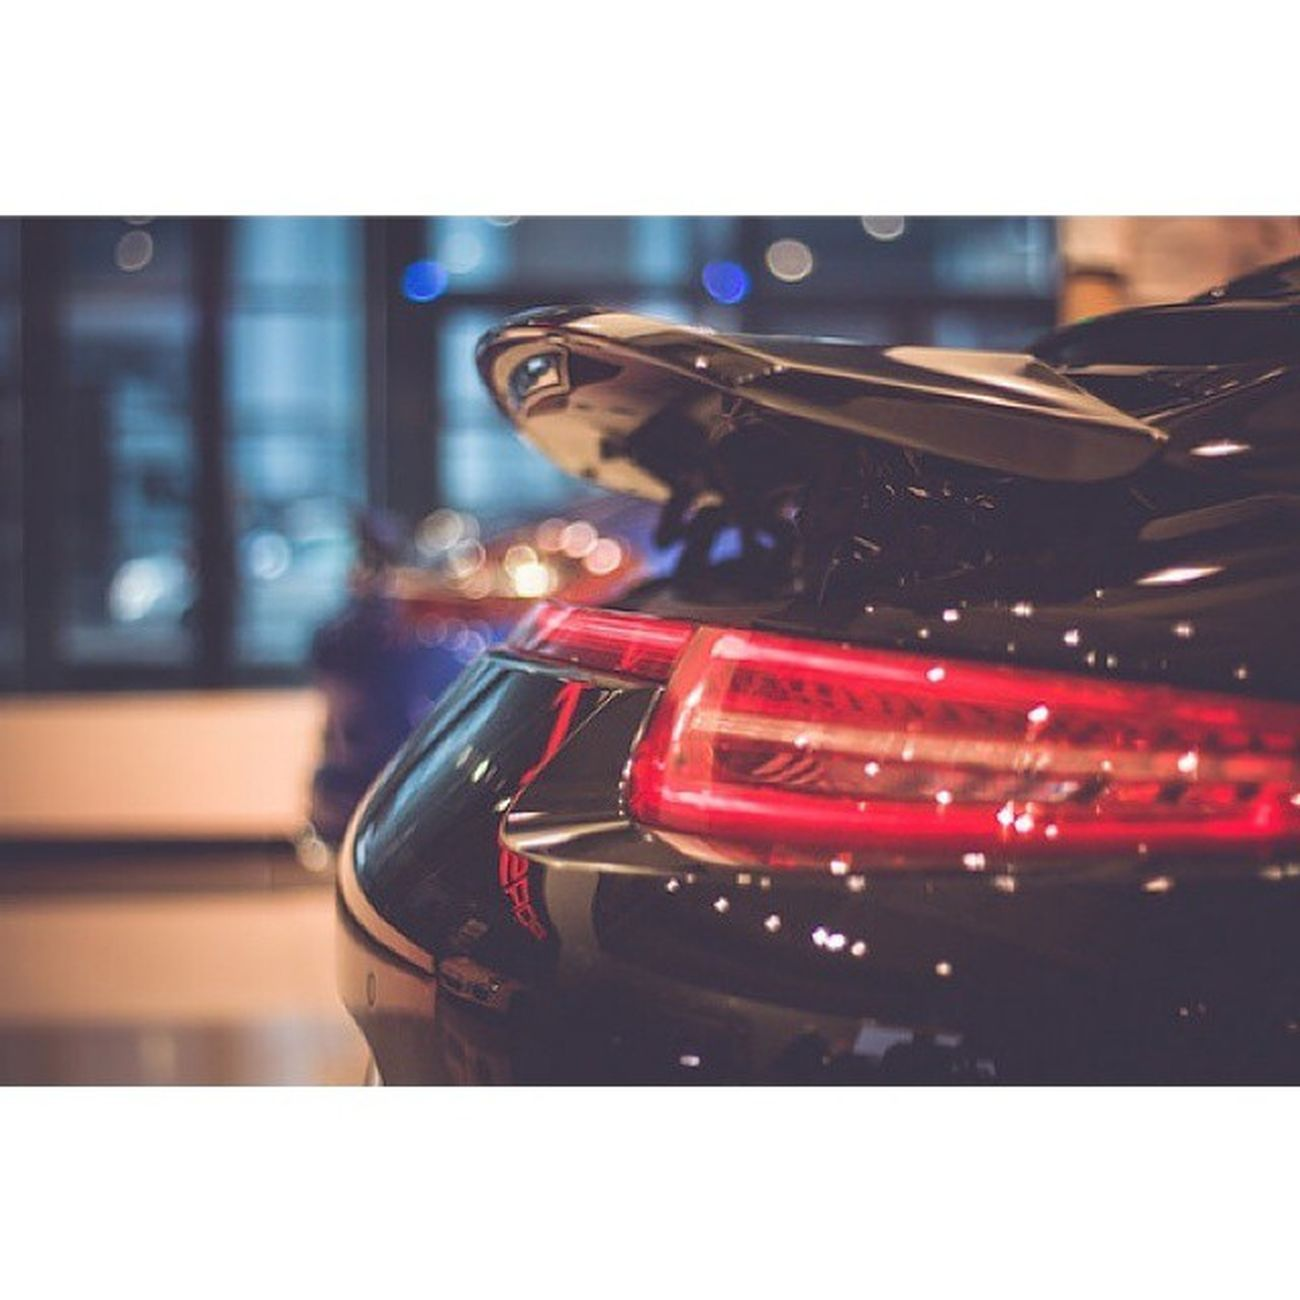 Porsche 911 Ducktail Sportscar spoiler cars car rear instacar instapic